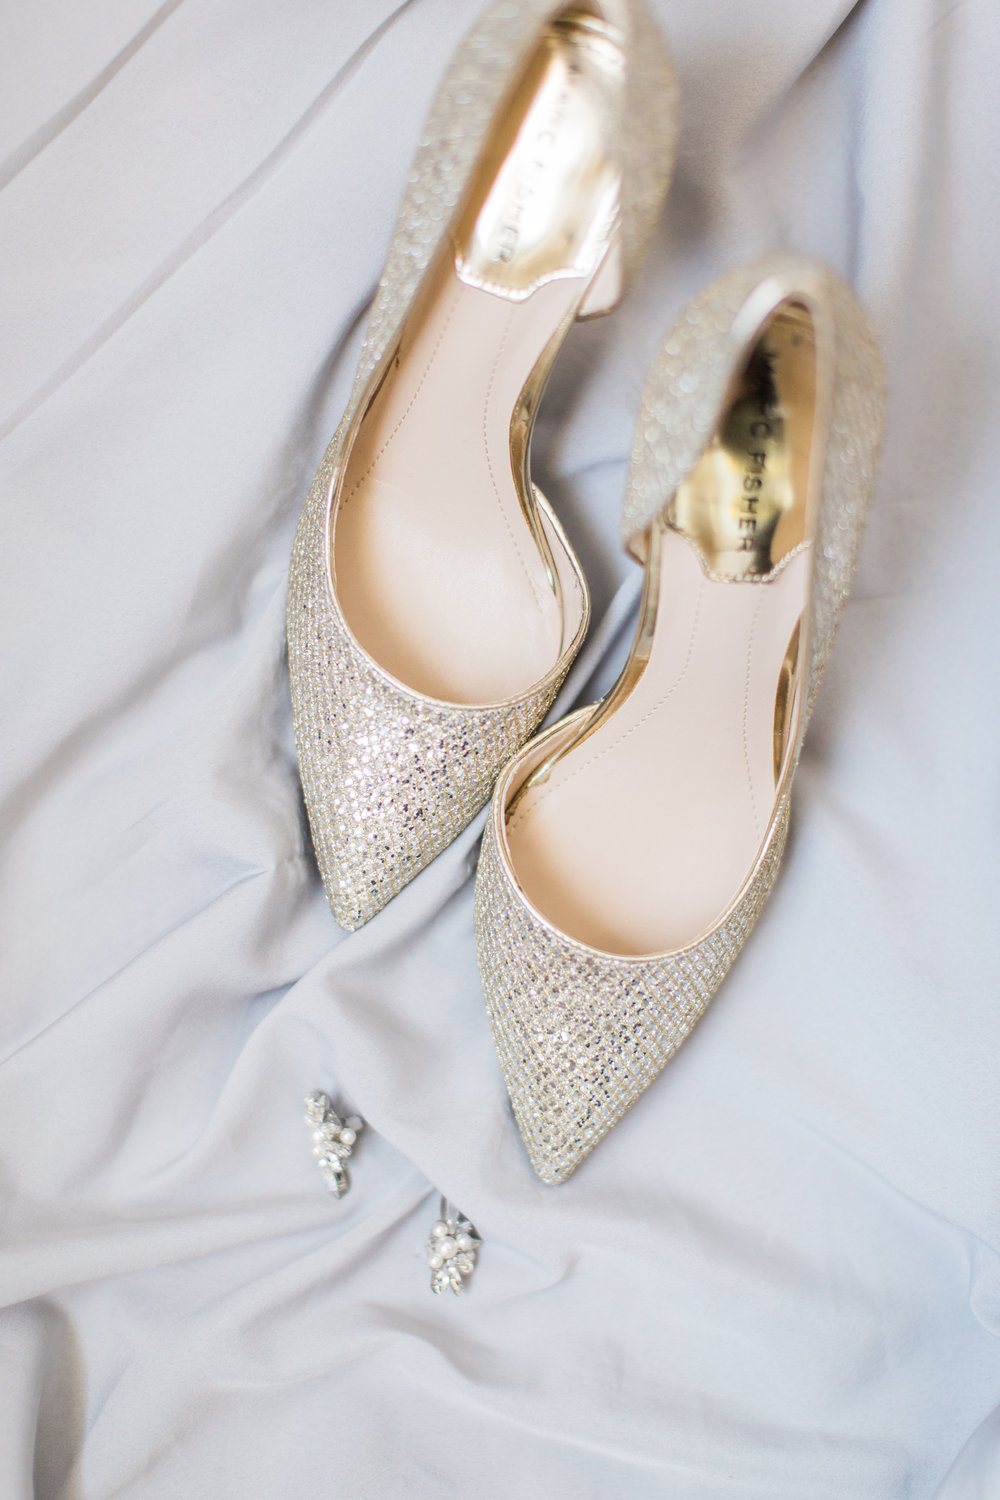 bride's wedding shoes and jewlery